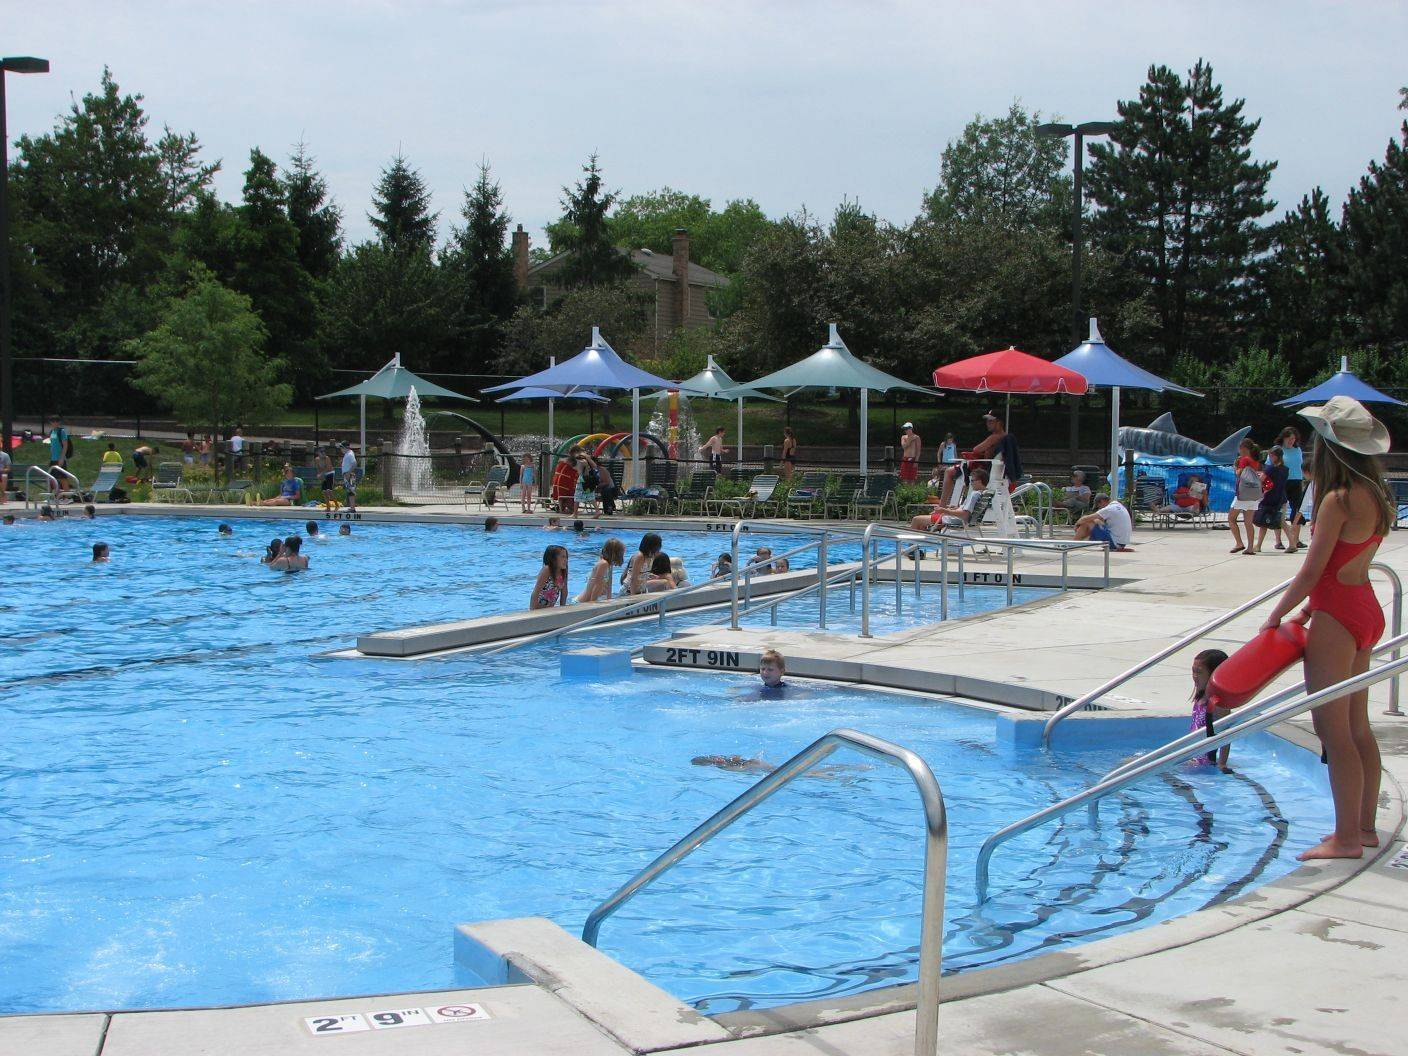 Birchwood Pool at 435 W. Illinois Ave., Palatine, features a tot pool, shark slide, a splash pad spray pool with geysers, dumping buckets, spray hoops and a water mushroom.